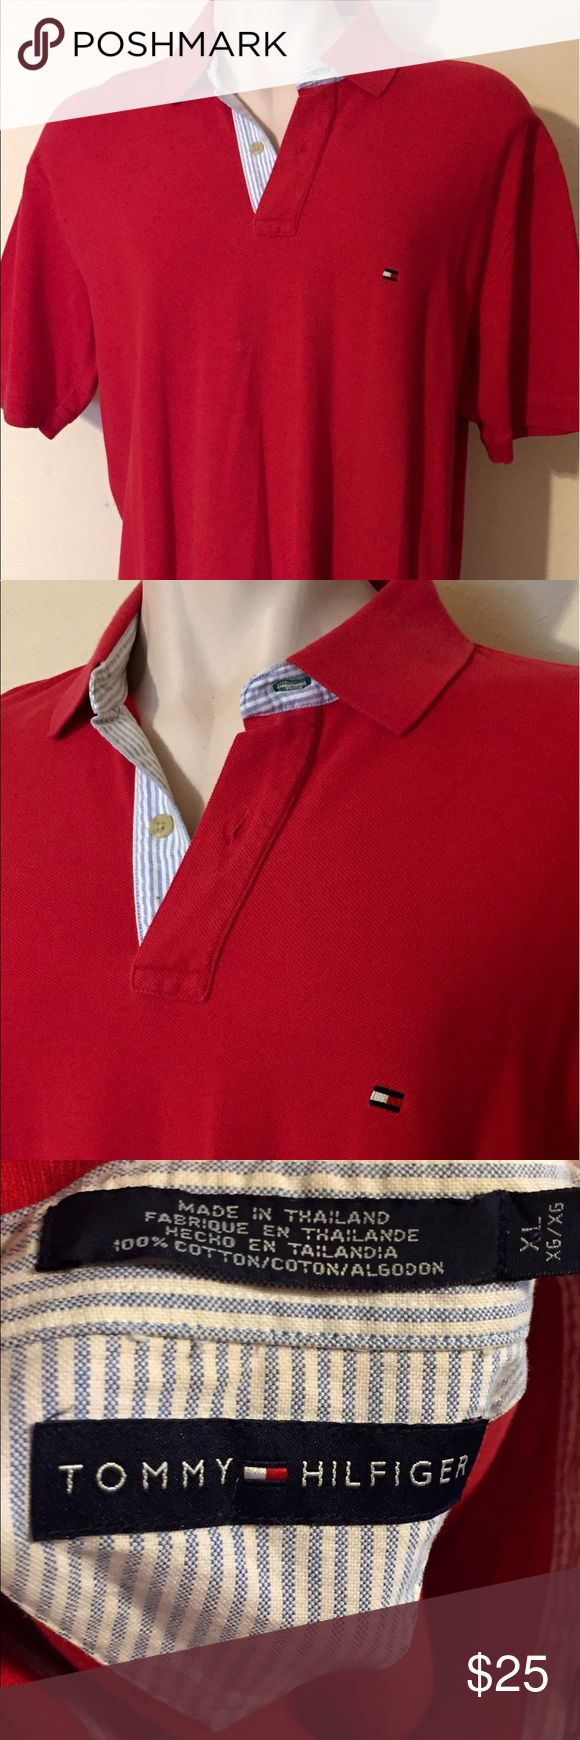 Tommy Hilfiger cotton polo shirt solid red Sz XL 051817-23 Tommy Hilfiger cotton polo shirt, red, Sz XL Tommy Hilfiger short sleeve 100% cotton polo shirt in solid red, Sz XL Chest - 50 Waist - 48 Length - 30 Shoulder Width - 22 Tommy Hilfiger Shirts Polos